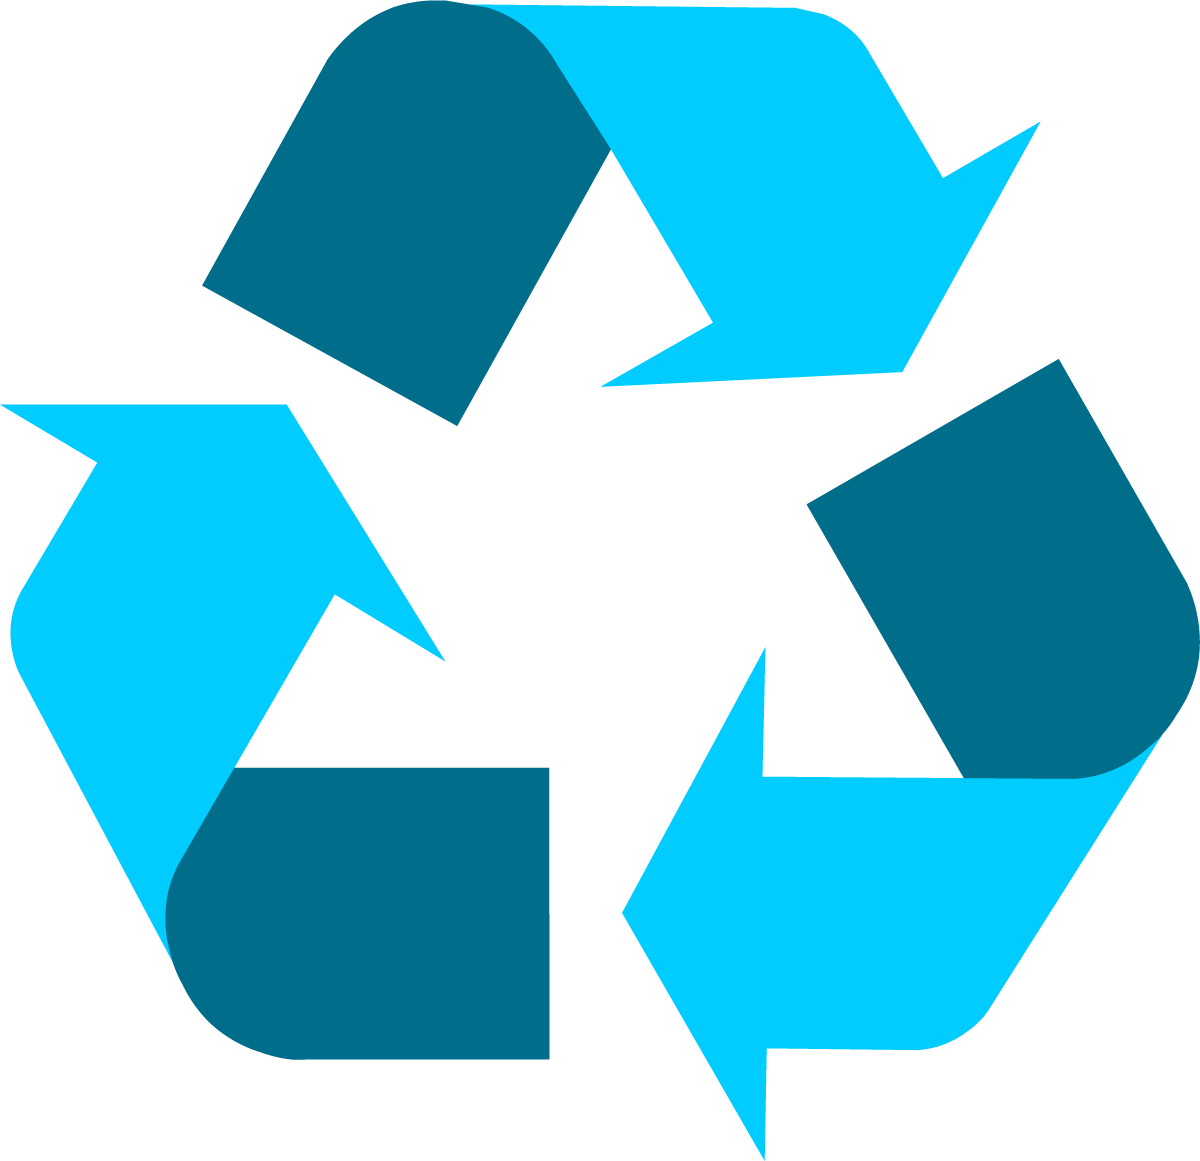 Grocery clipart recycling bag. Light blue universal symbol